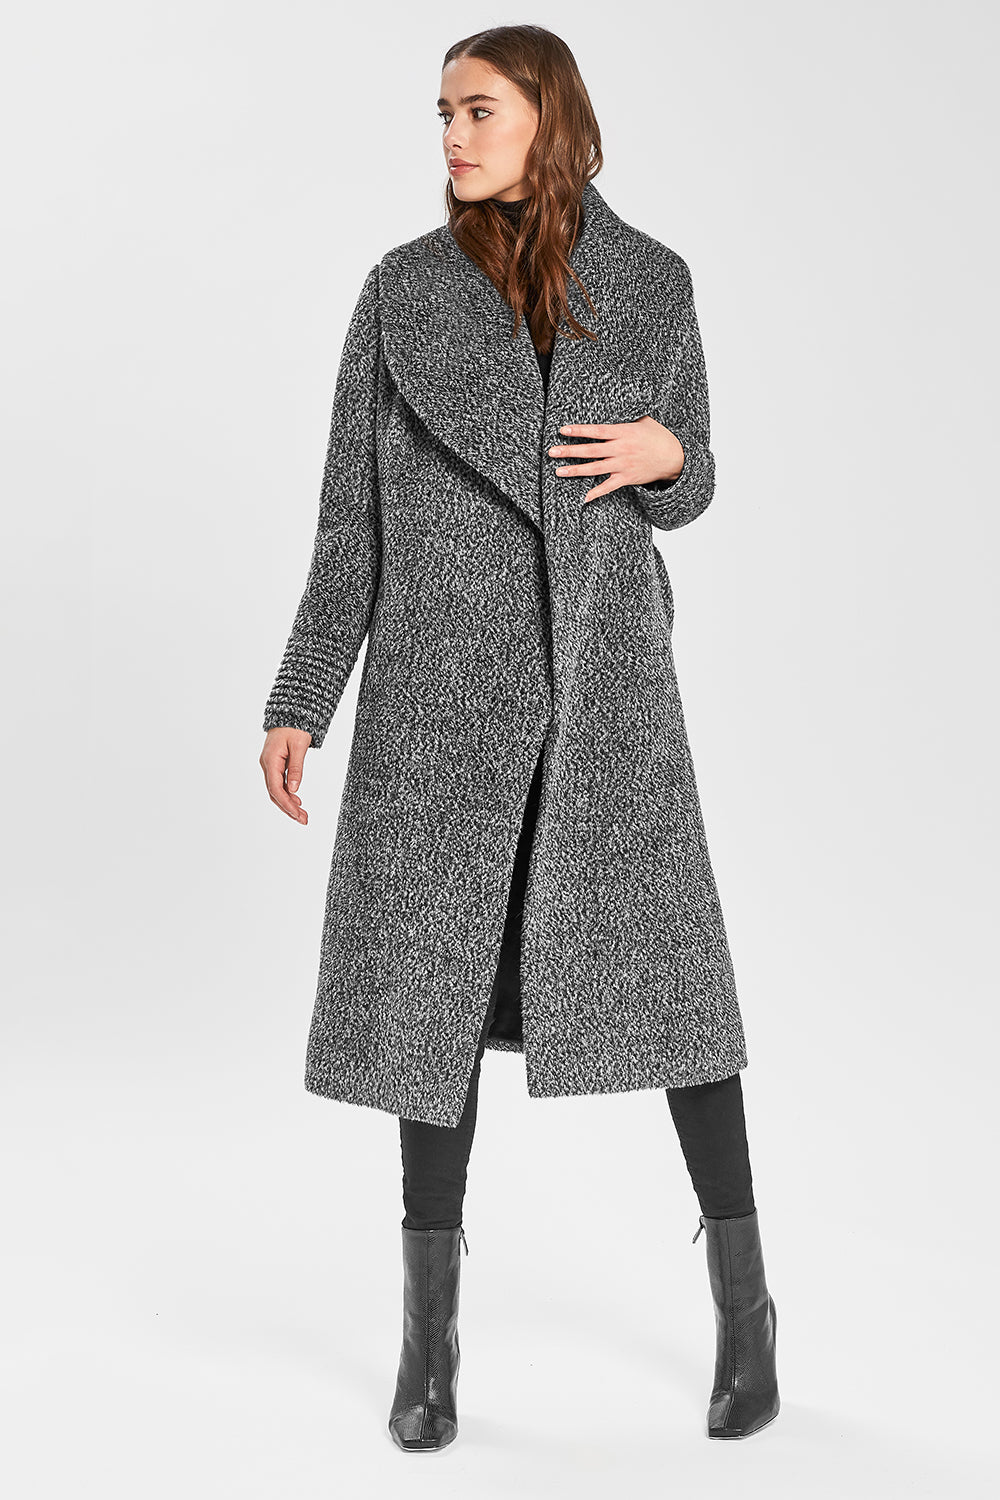 Sentaler Bouclé Alpaca Long Wide Shawl Collar Wrap Coat featured in Bouclé Alpaca and available in Salt & Pepper. Seen open.